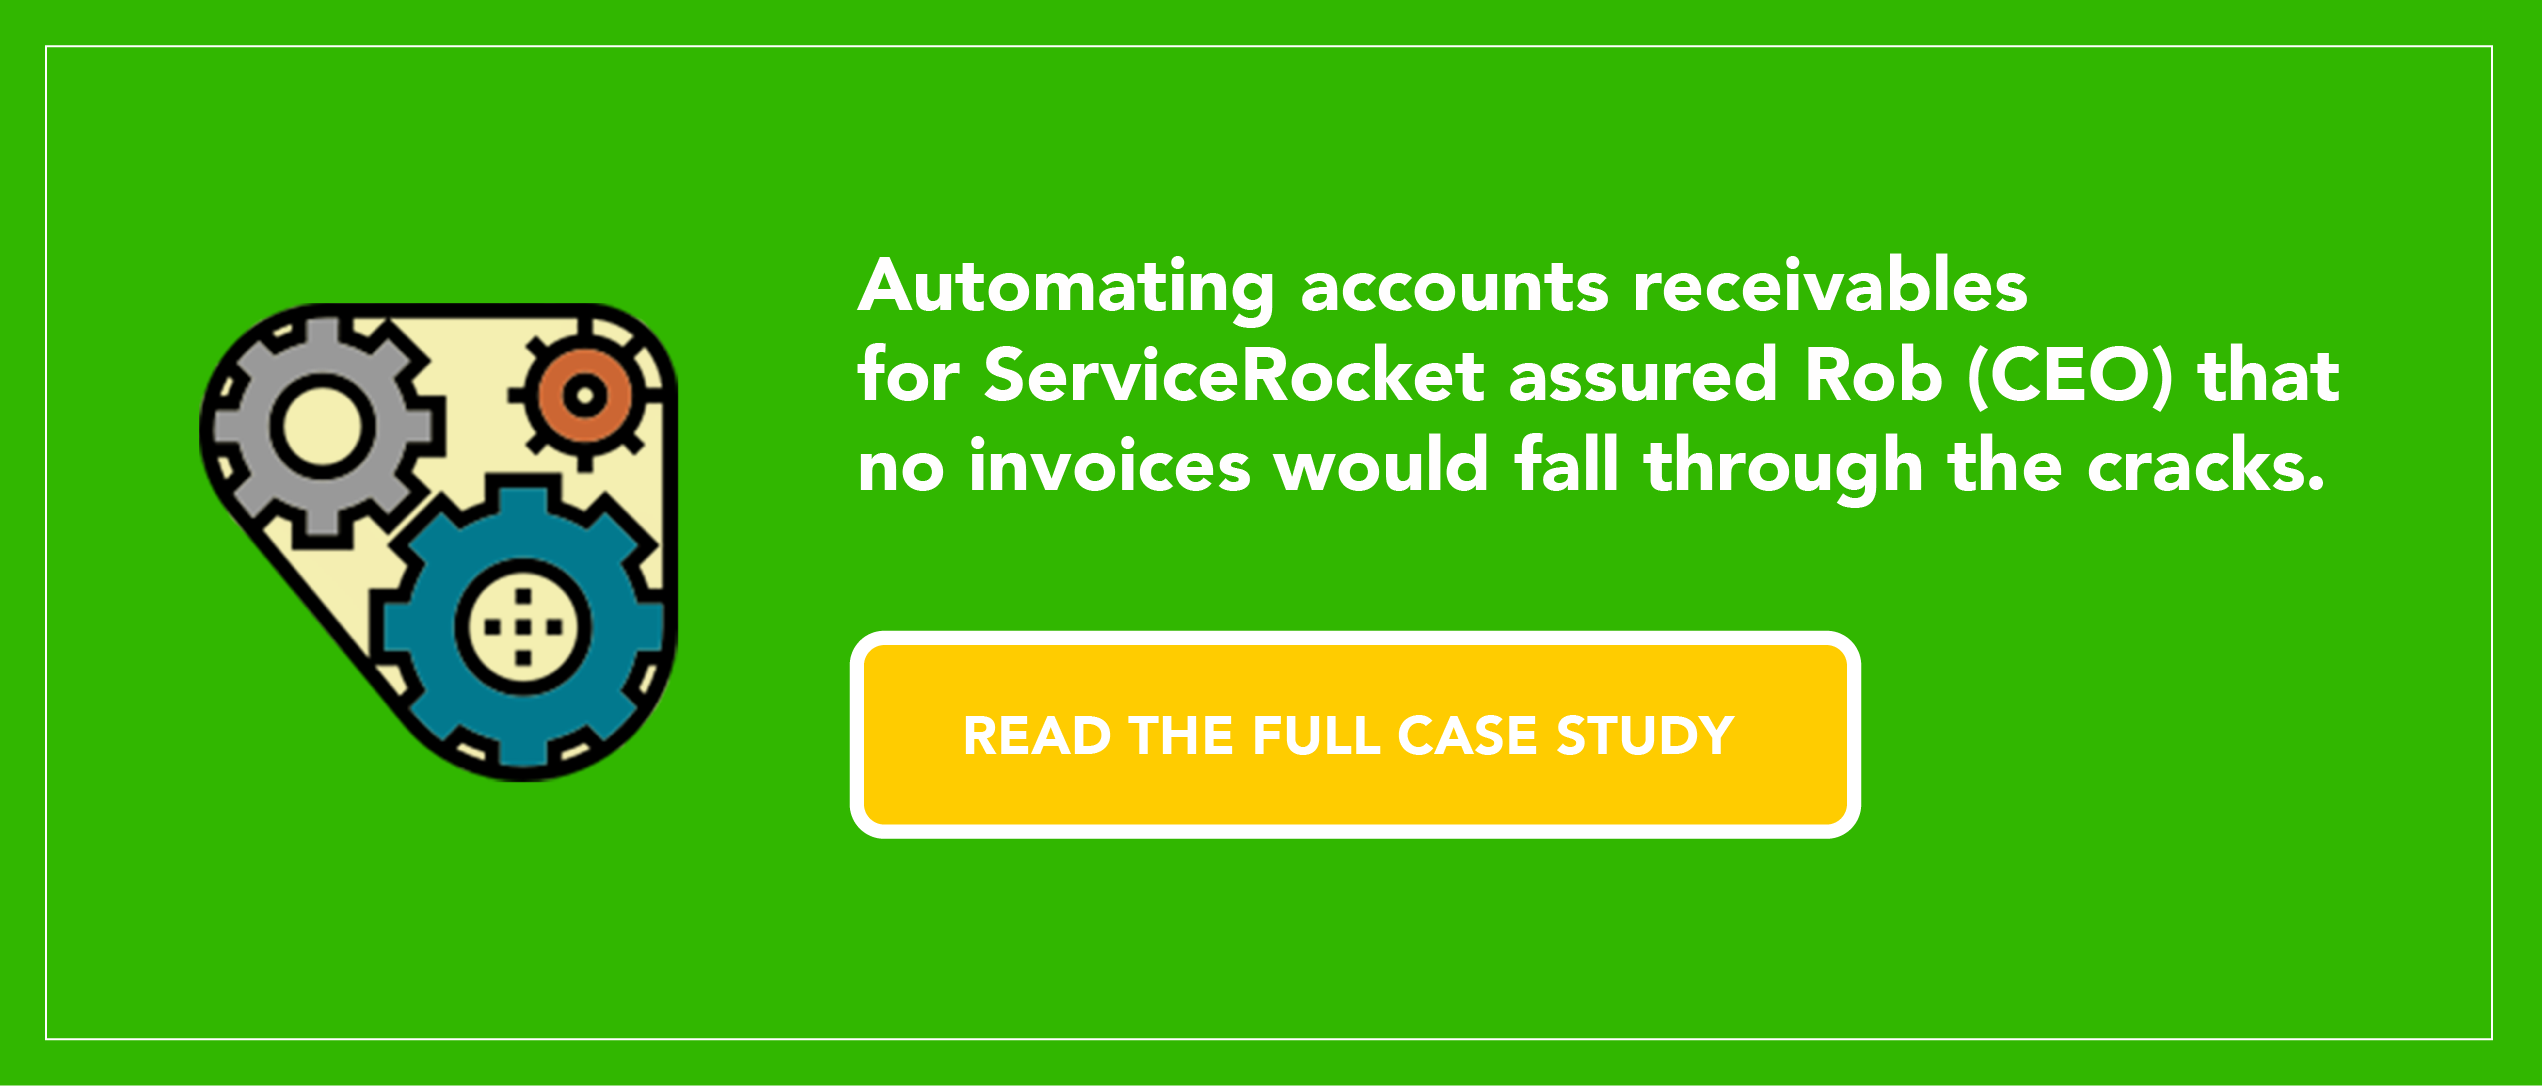 Automating AR for ServiceRocket assured Rob that no invoices would fall through the cracks.